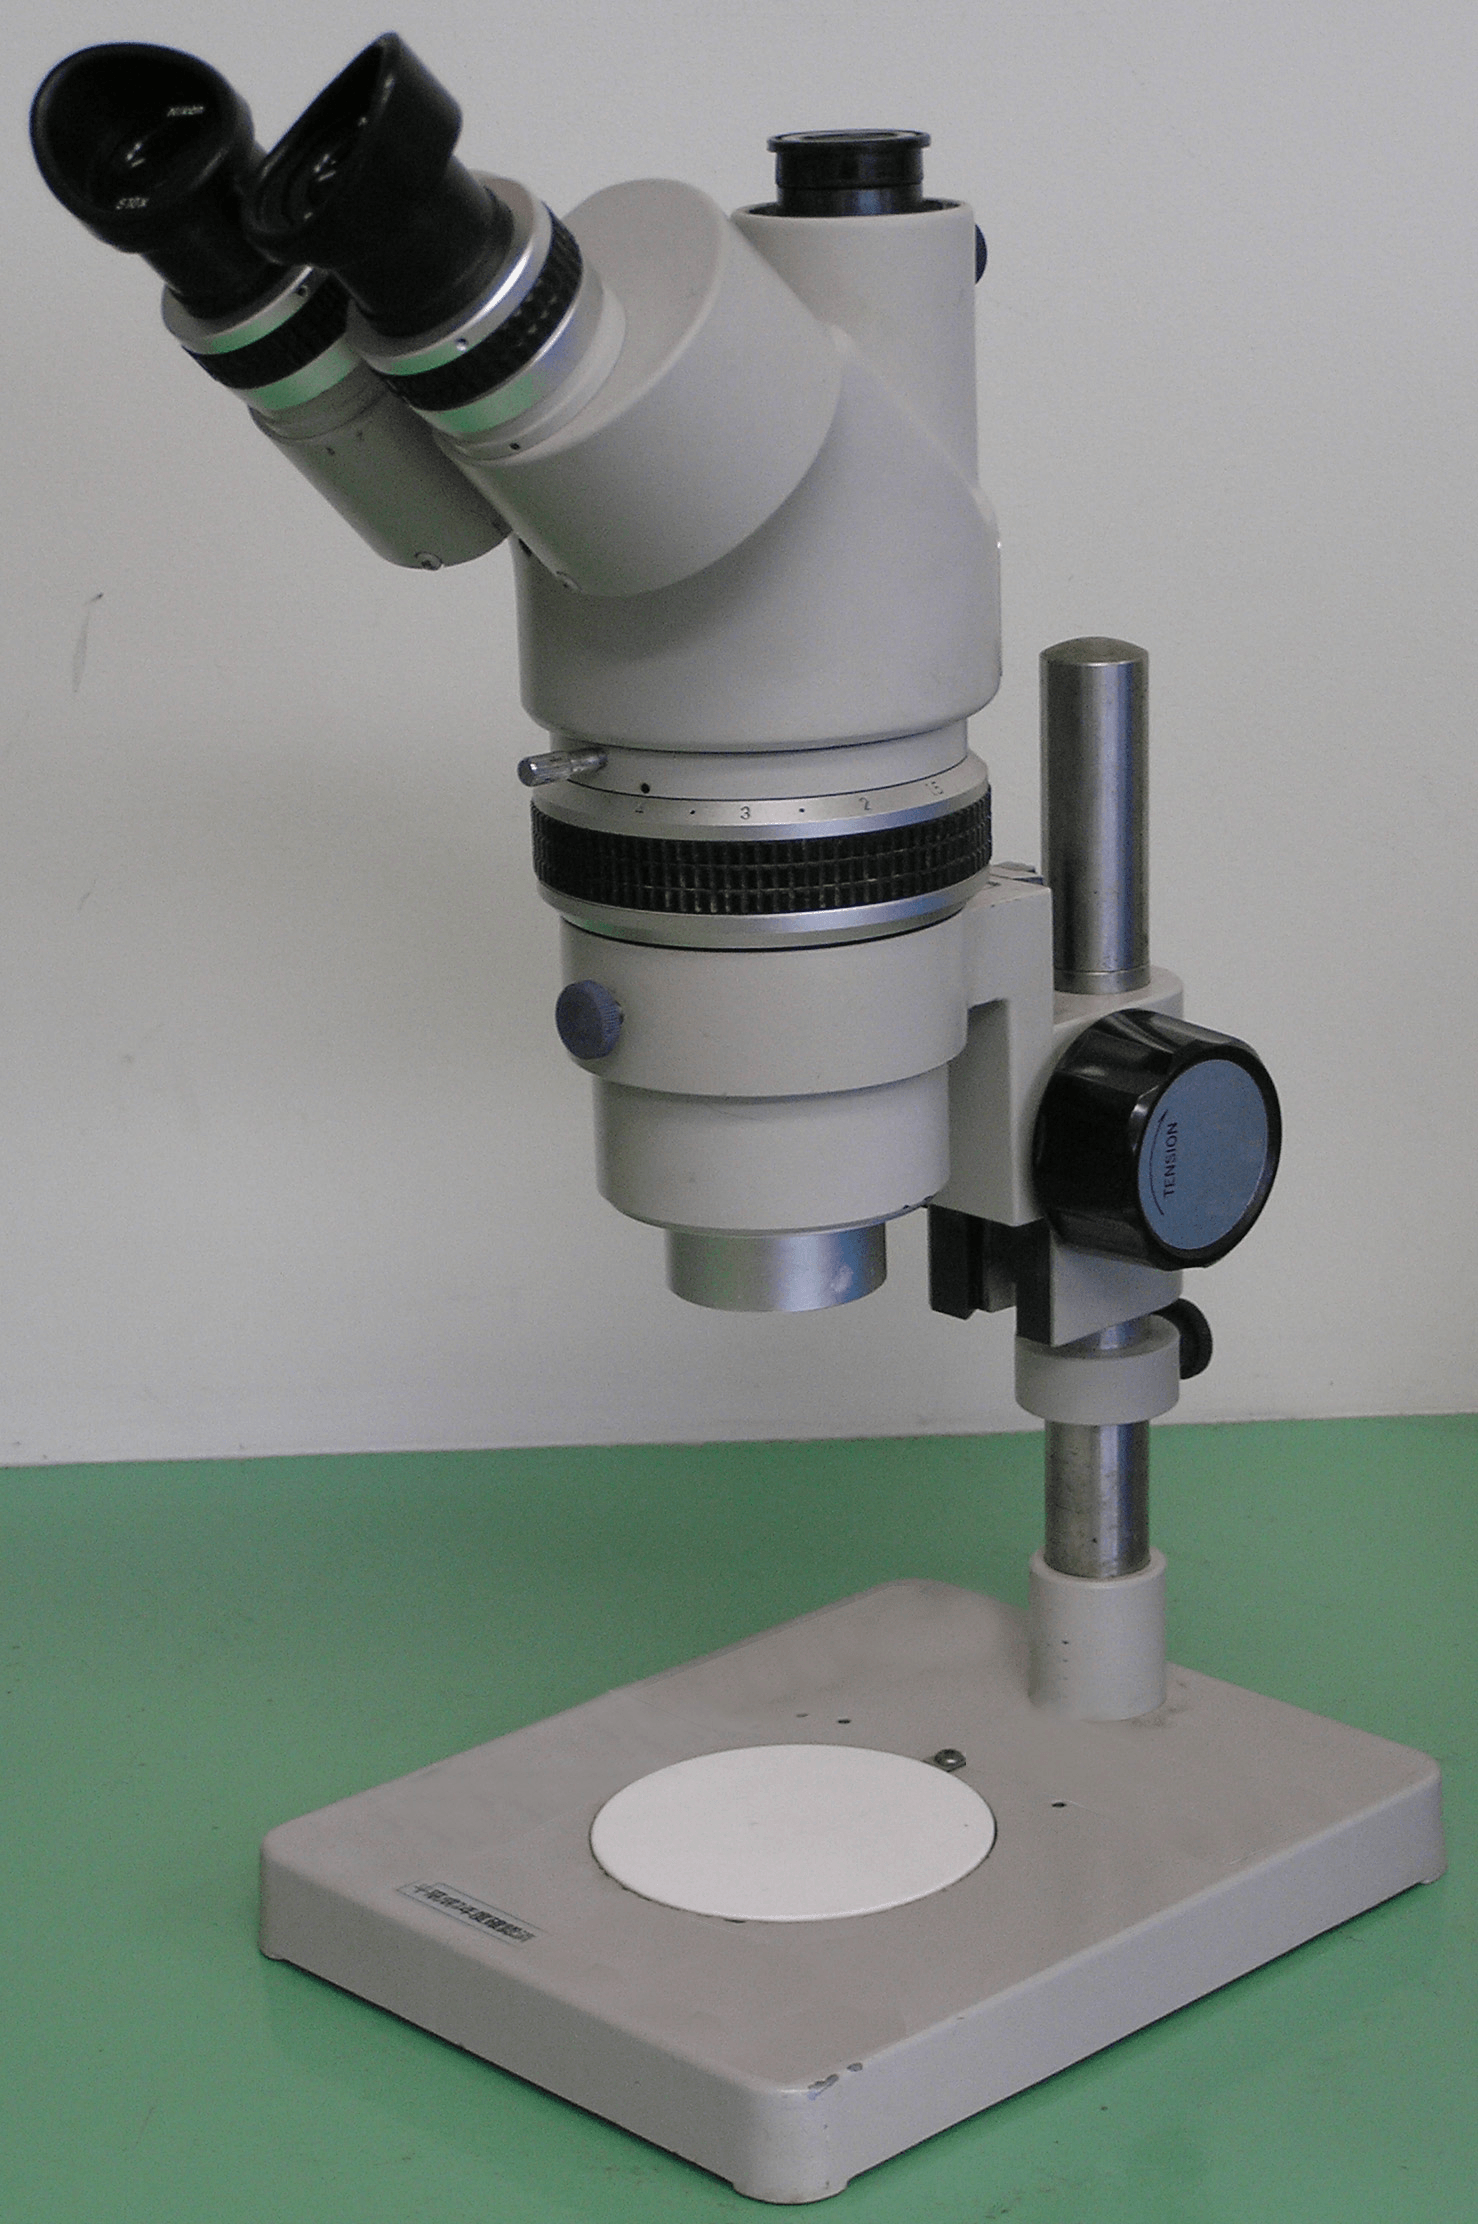 Metallurgical Microscopes Information Engineering360 Transimpedance Amplifiers Microscope